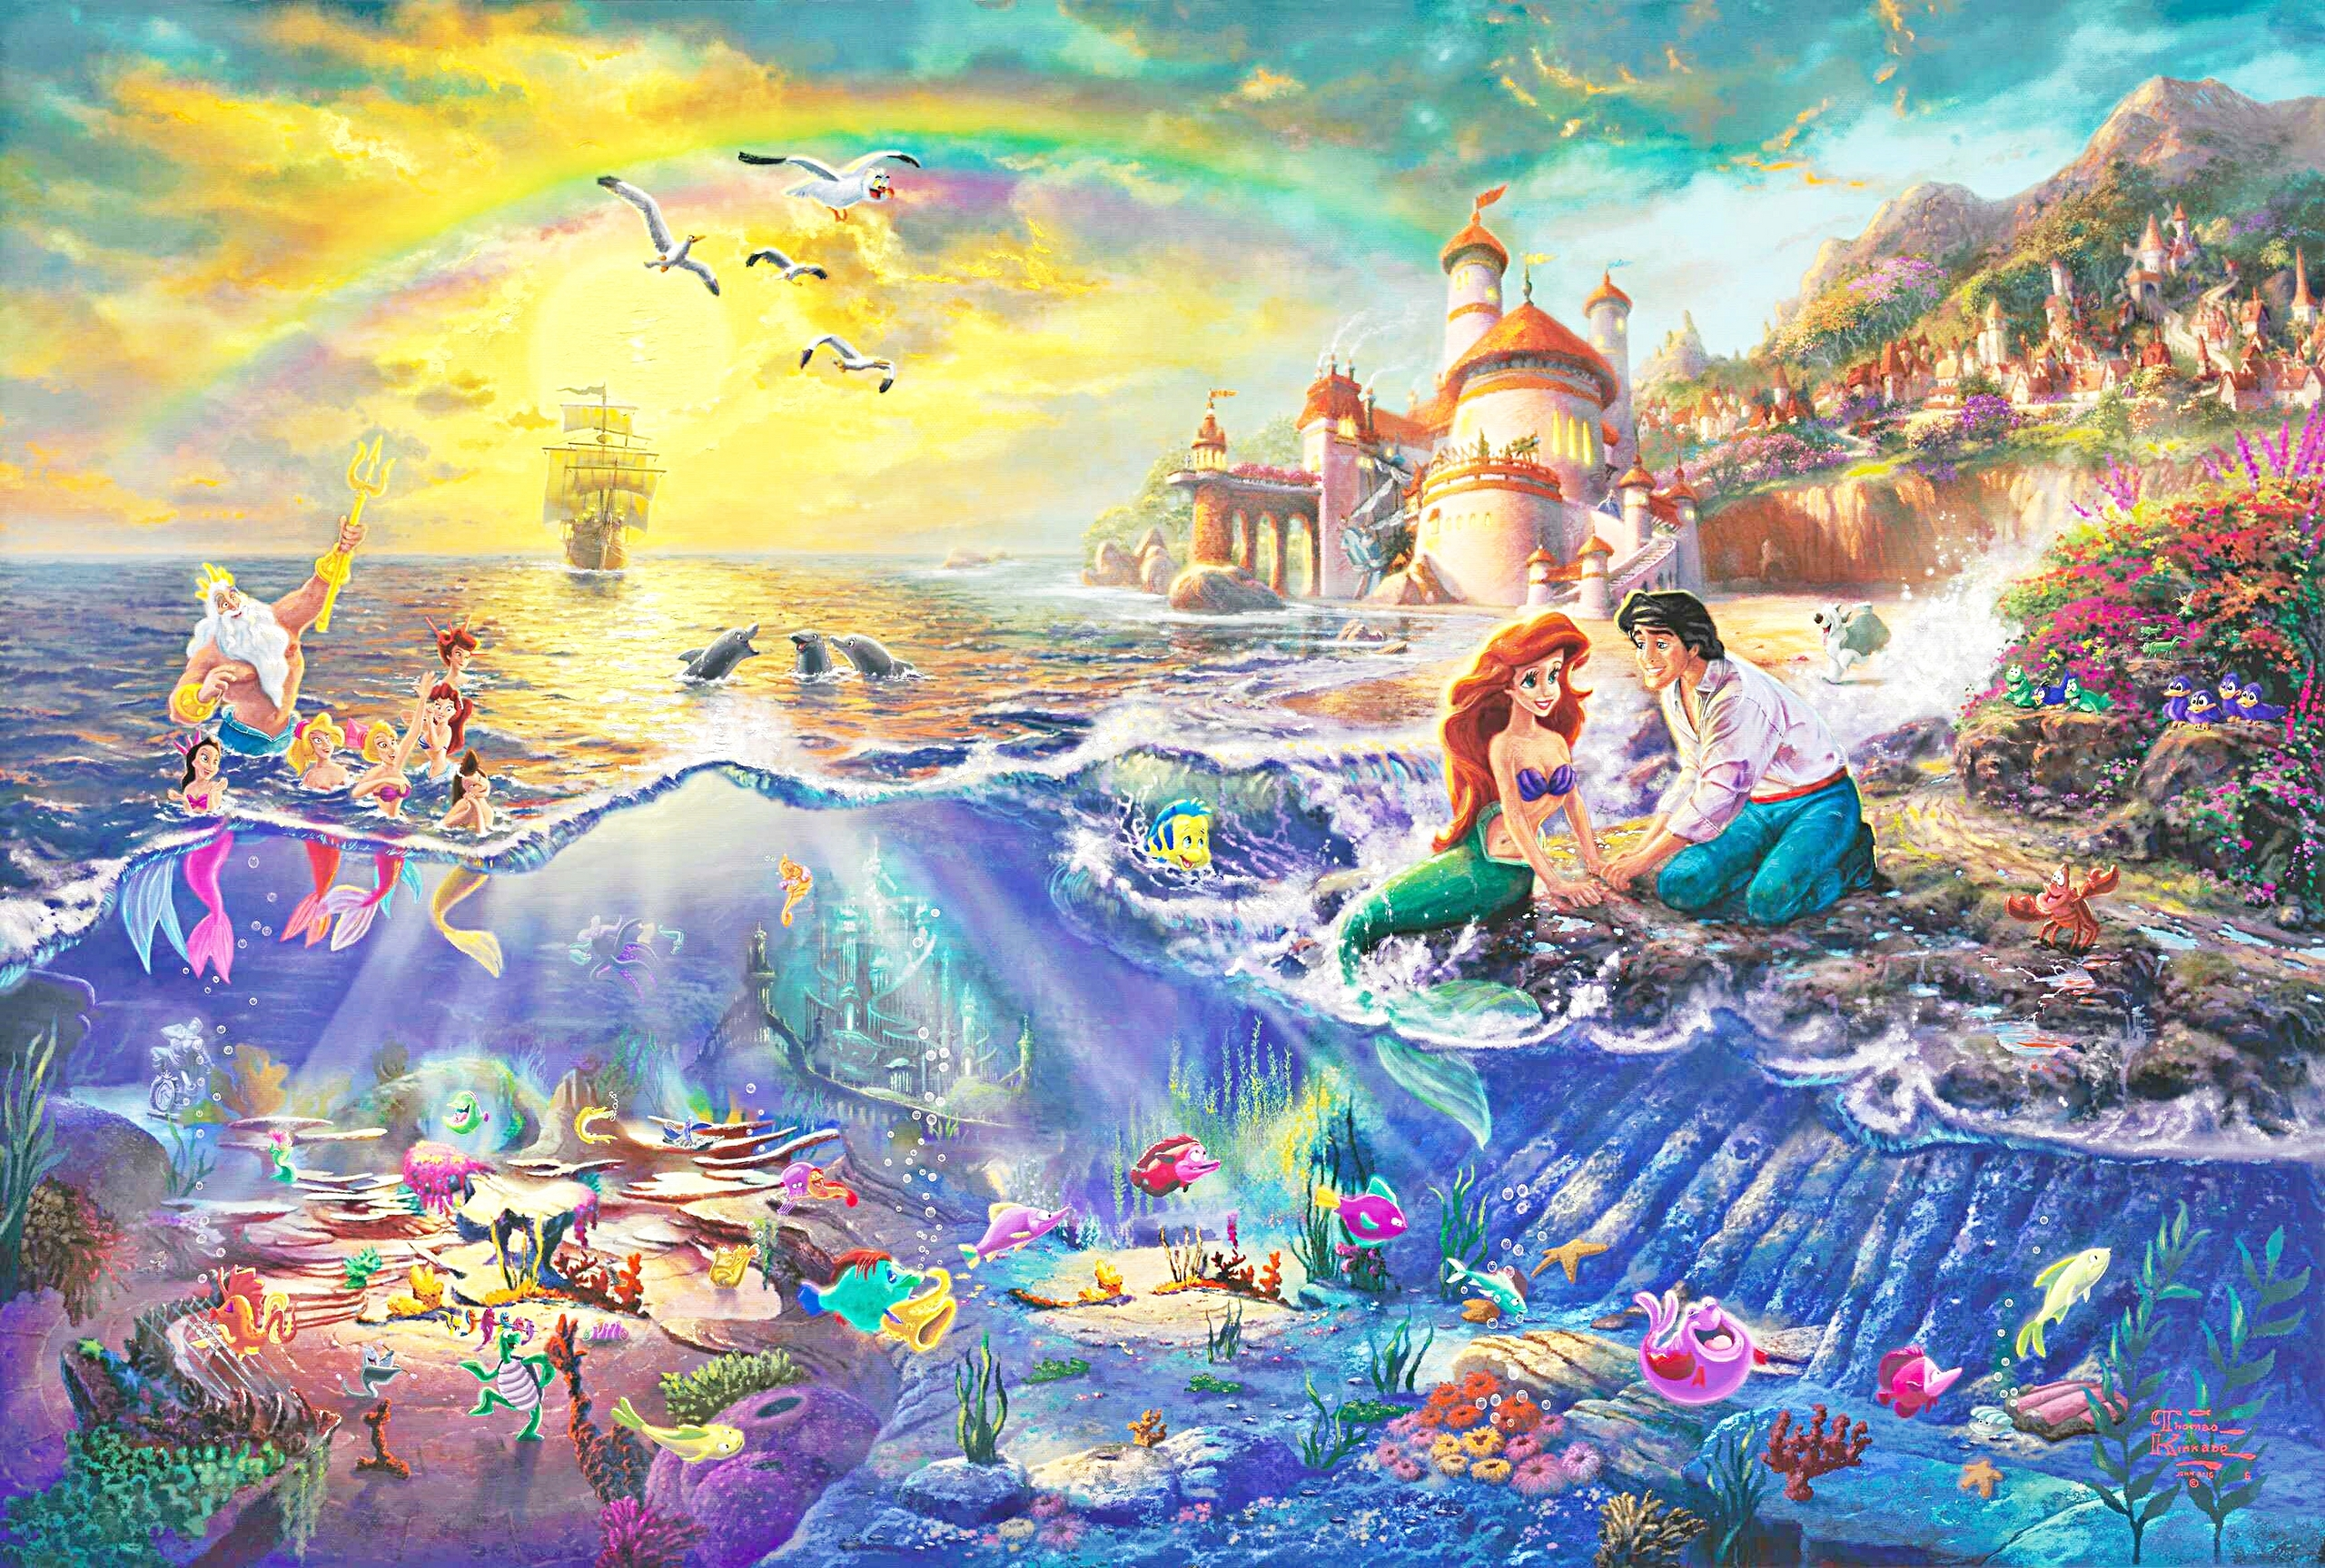 the little mermaid wallpapers high quality | download free